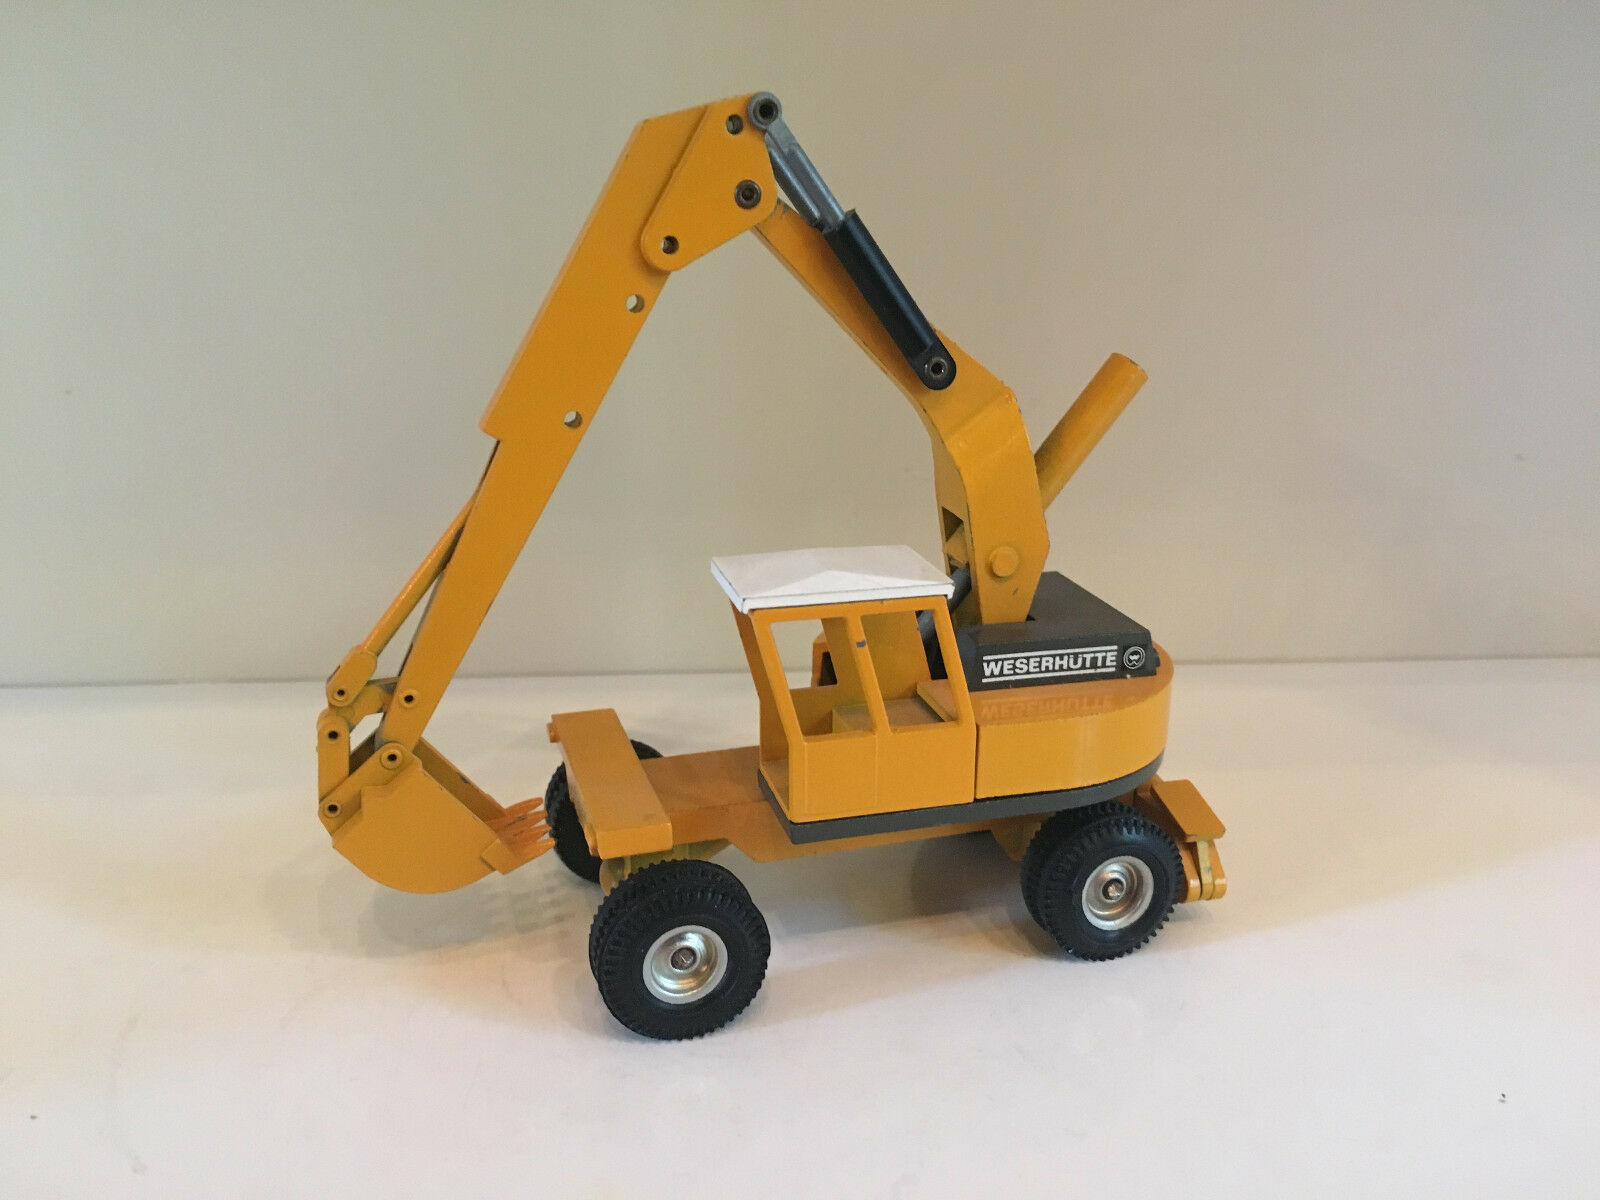 Weser Hut HW 70 Mobile Excavator by NZG 101 1 50